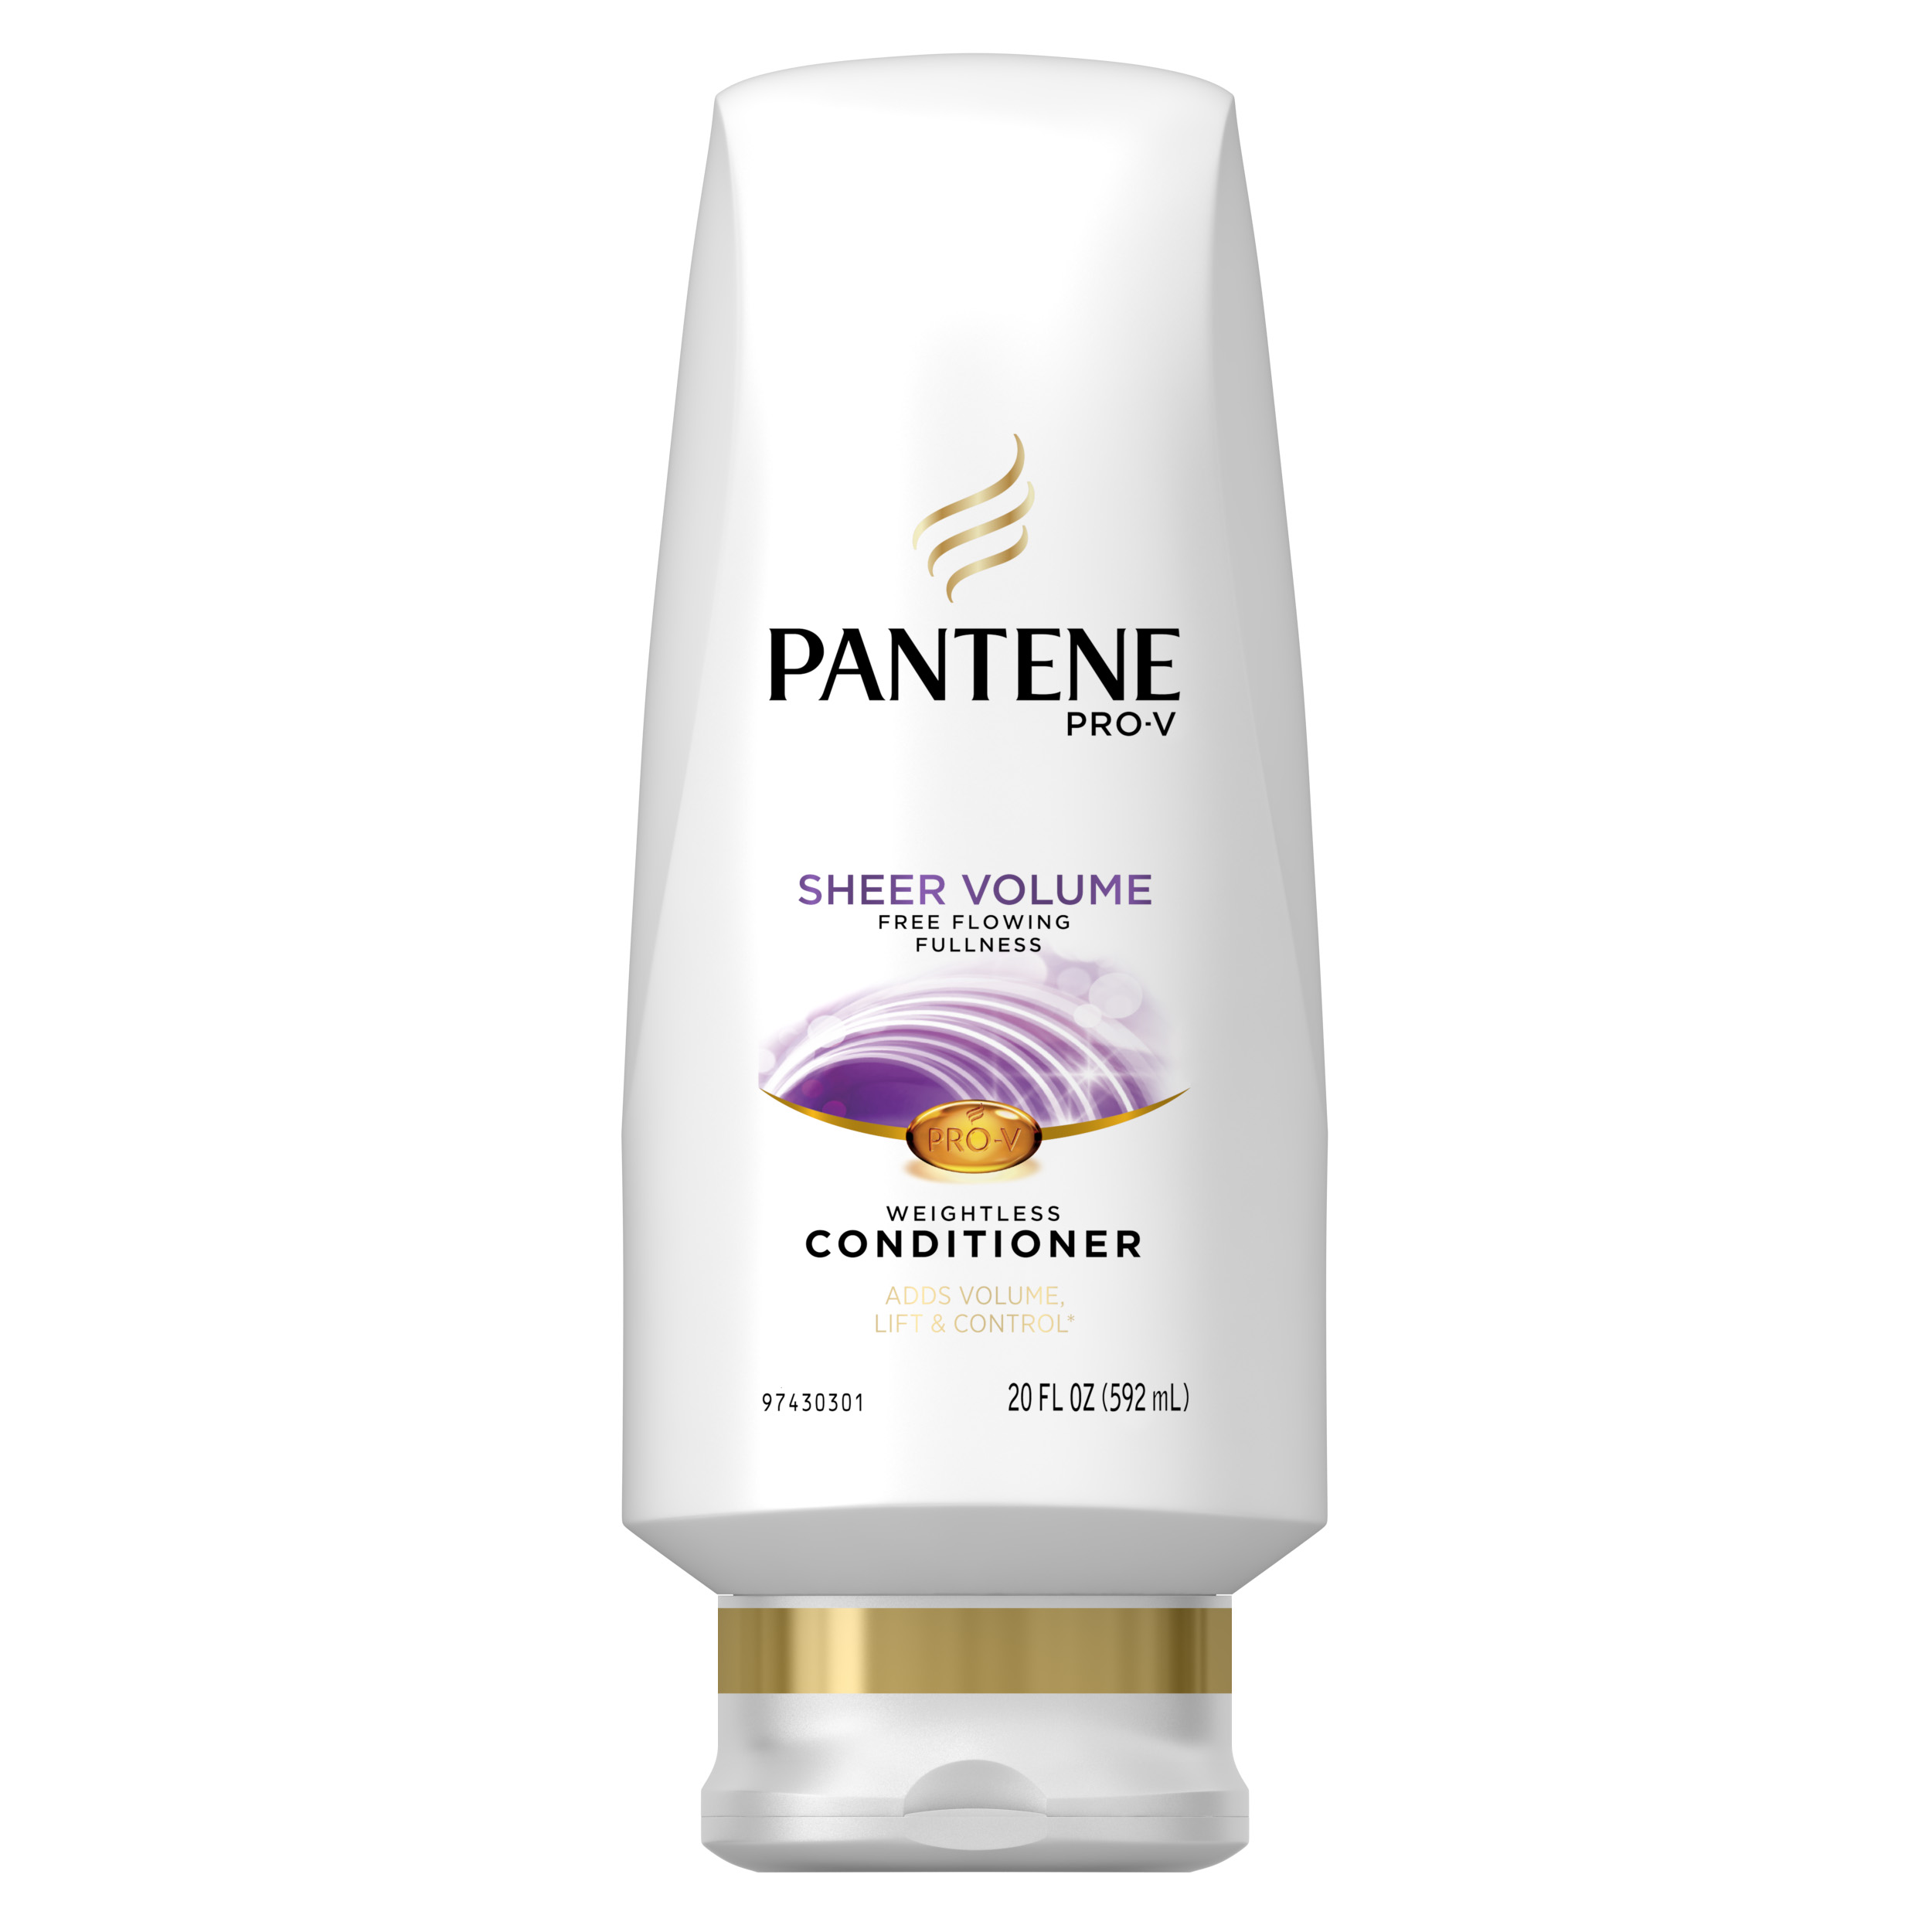 Pantene Pro-V Sheer Volume Conditioner, 21.1 fl oz